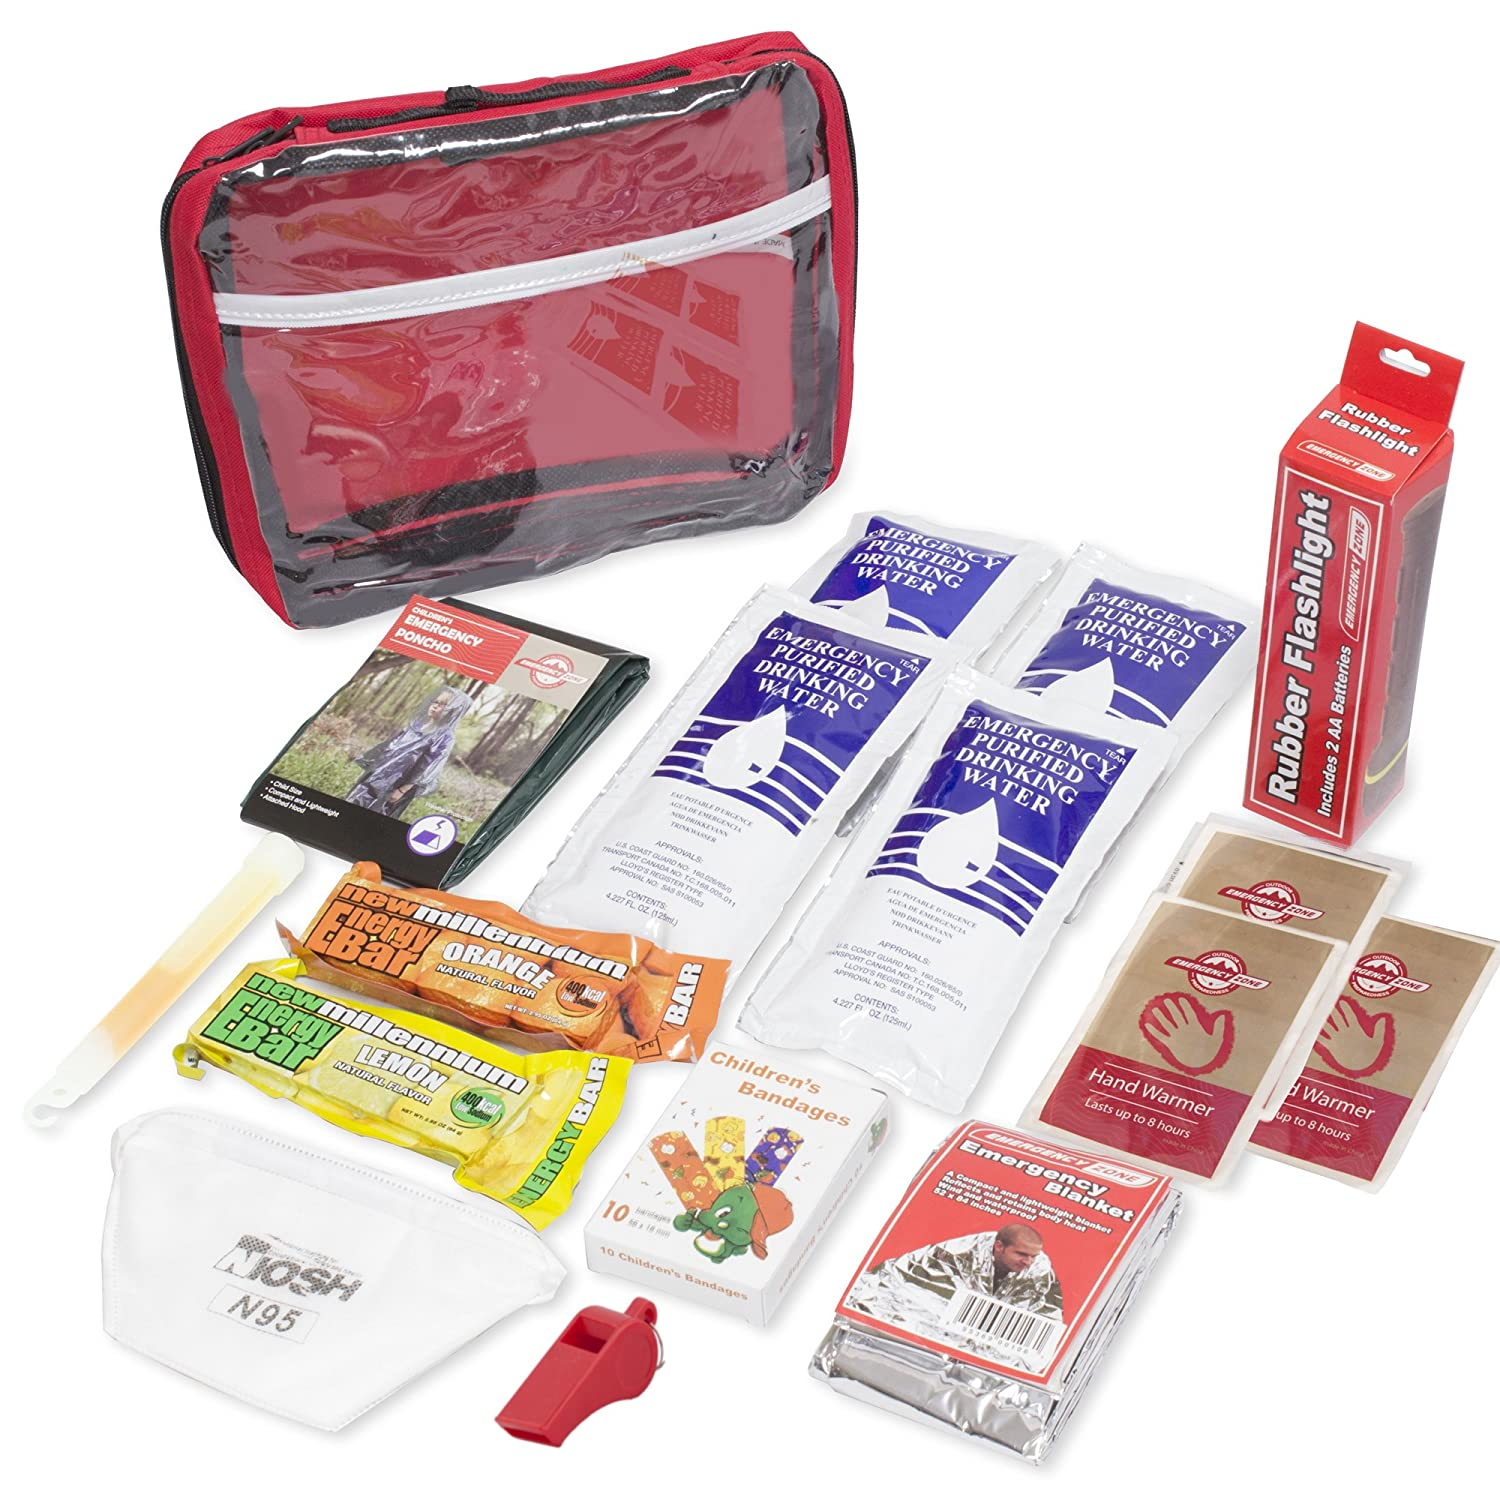 new styles 8b8a7 f62b1 Emergency Zone Keep-Me-Safe Children's Deluxe 72-Hour Emergency Survival  Kit | Perfect Way to Prepare Your Family for Disasters Like Hurricanes, ...